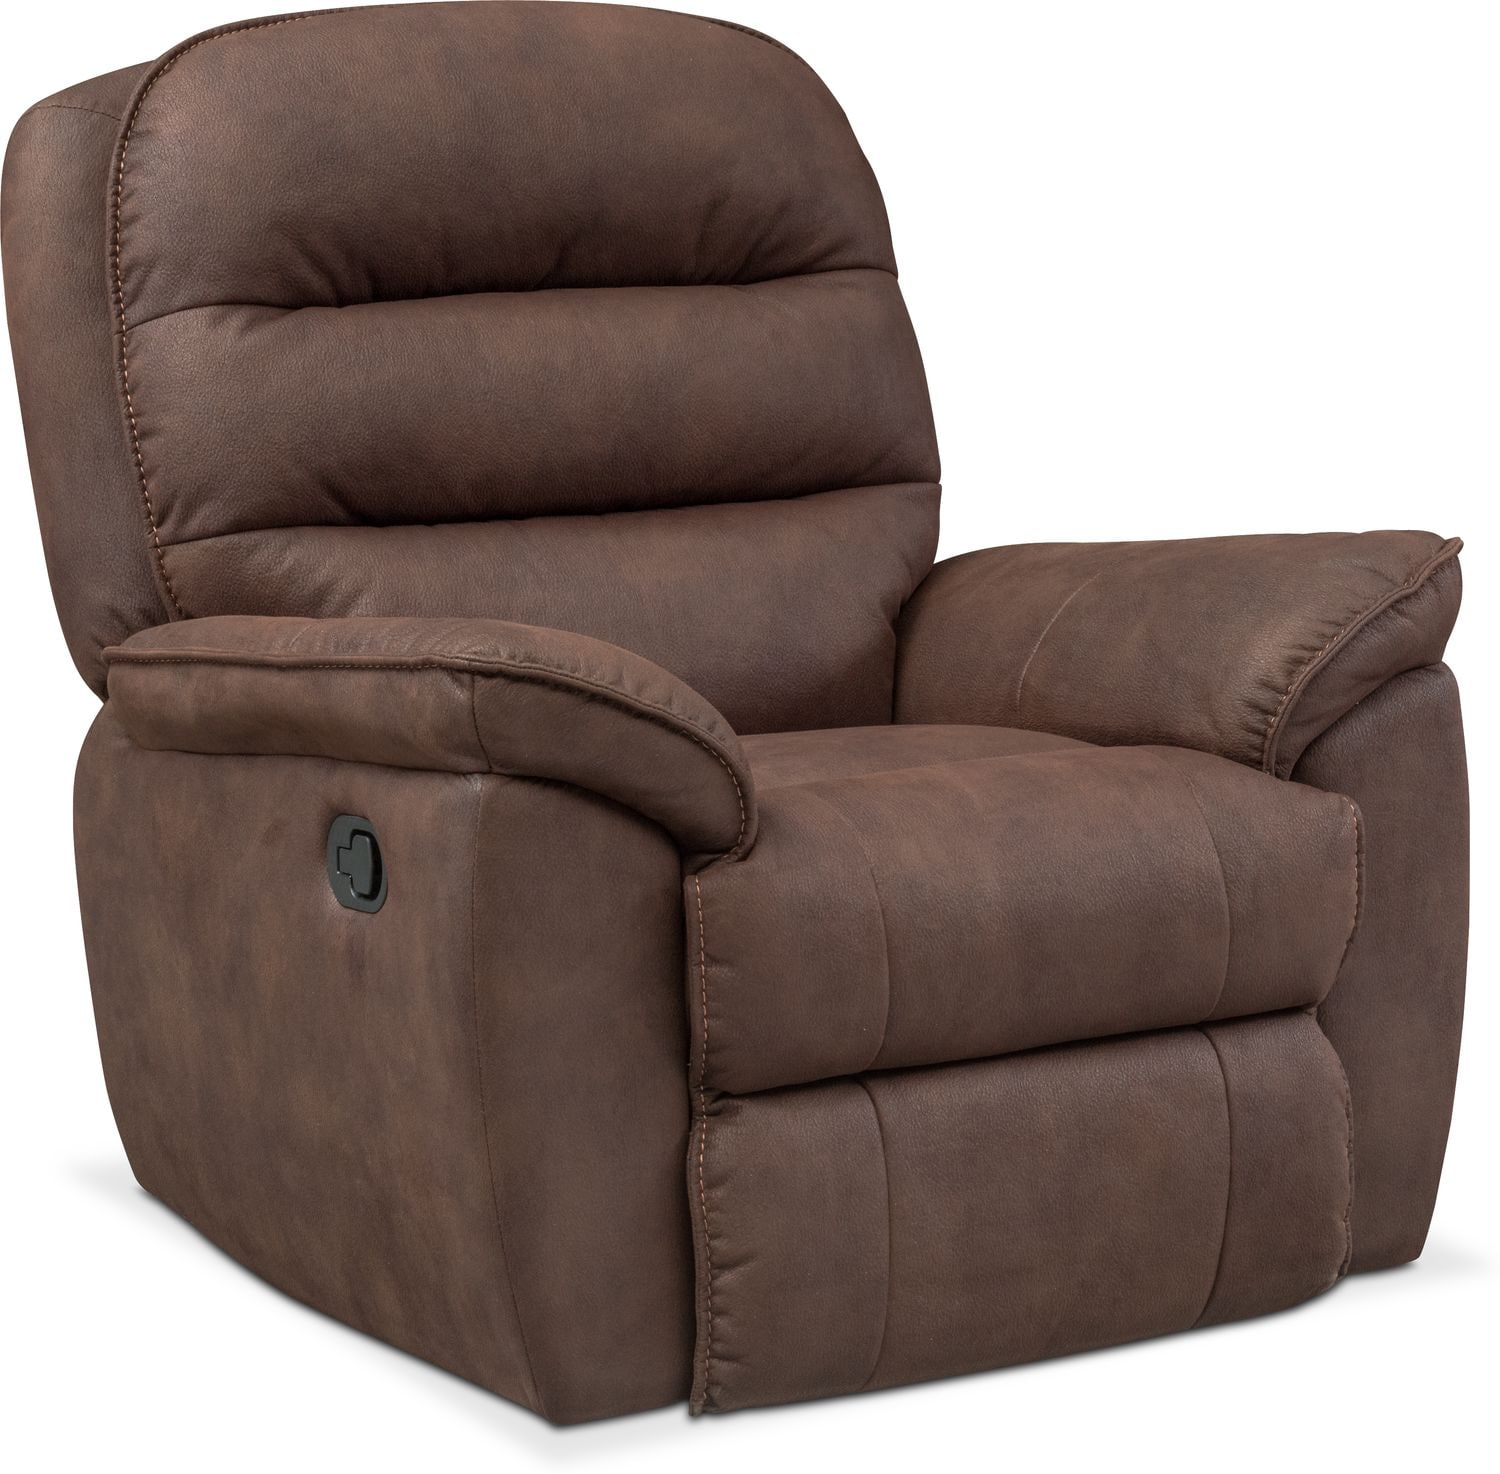 Regis Glider Recliner - Brown  sc 1 st  Value City Furniture : sofia the first recliner - islam-shia.org